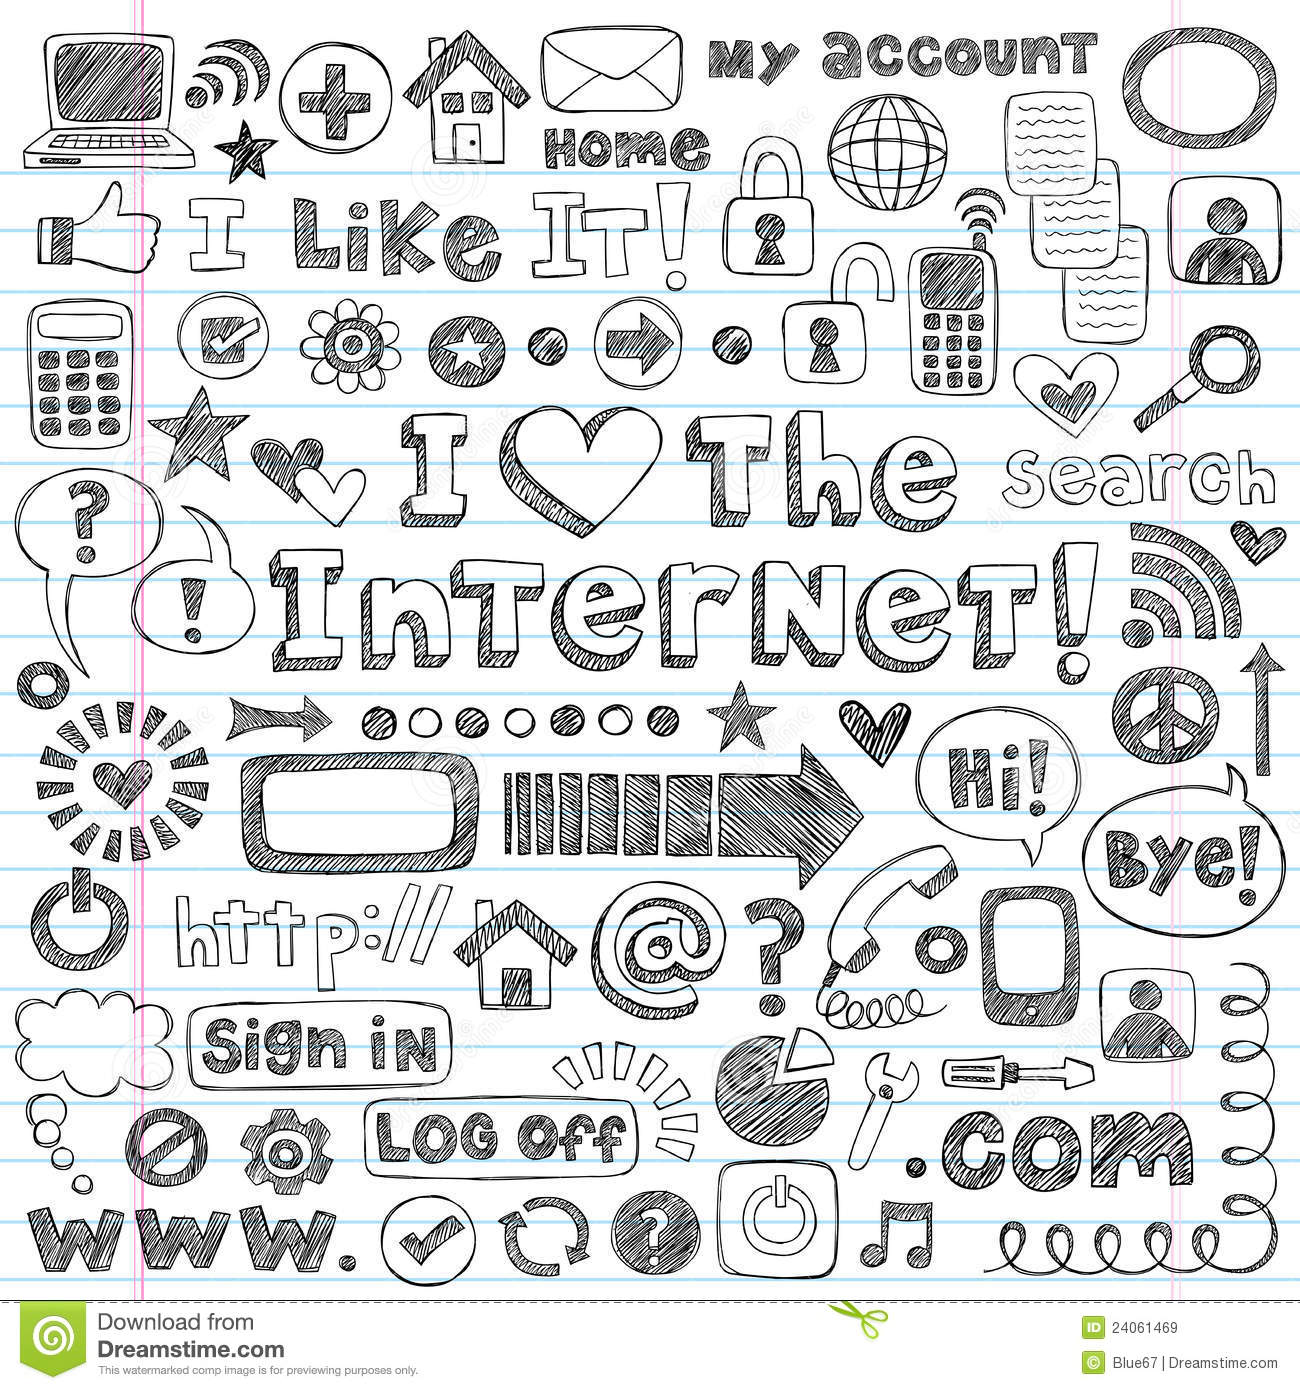 internet web icon computer sketchy doodles set 24061469